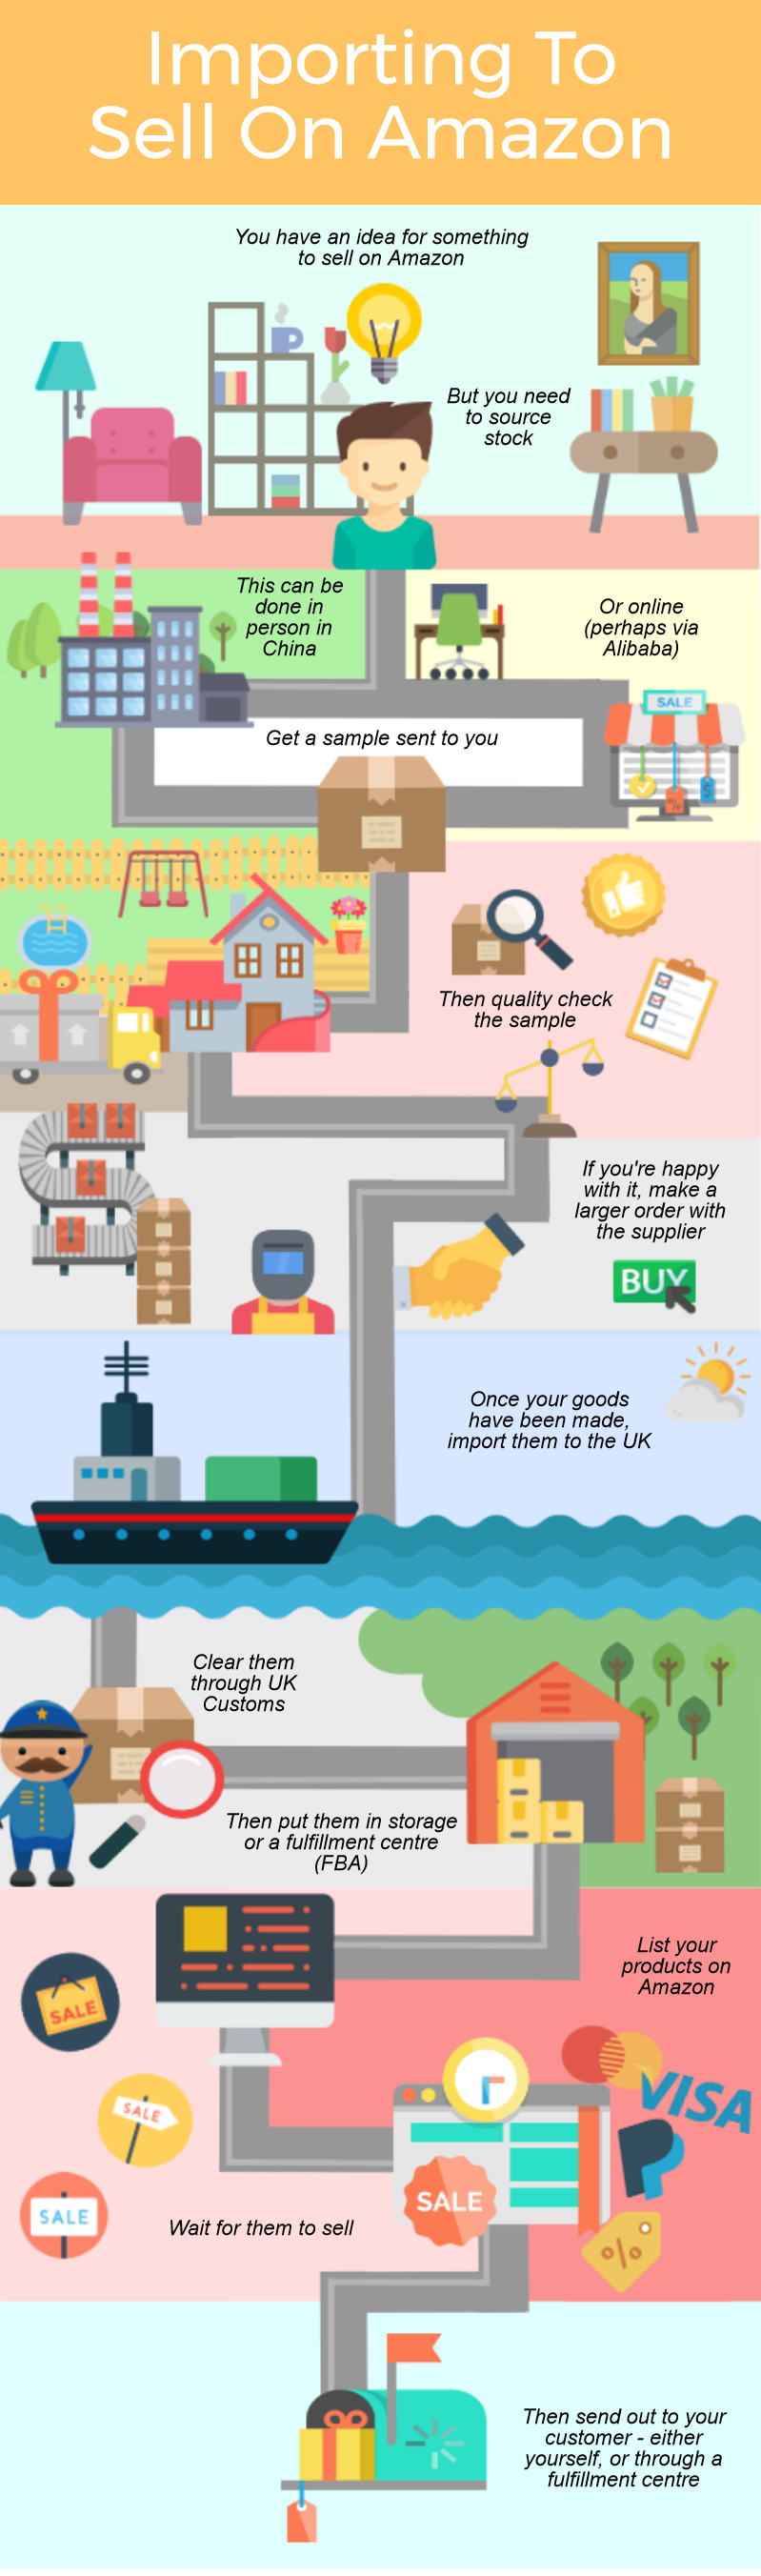 Importing From China To Sell On Amazon Infographic